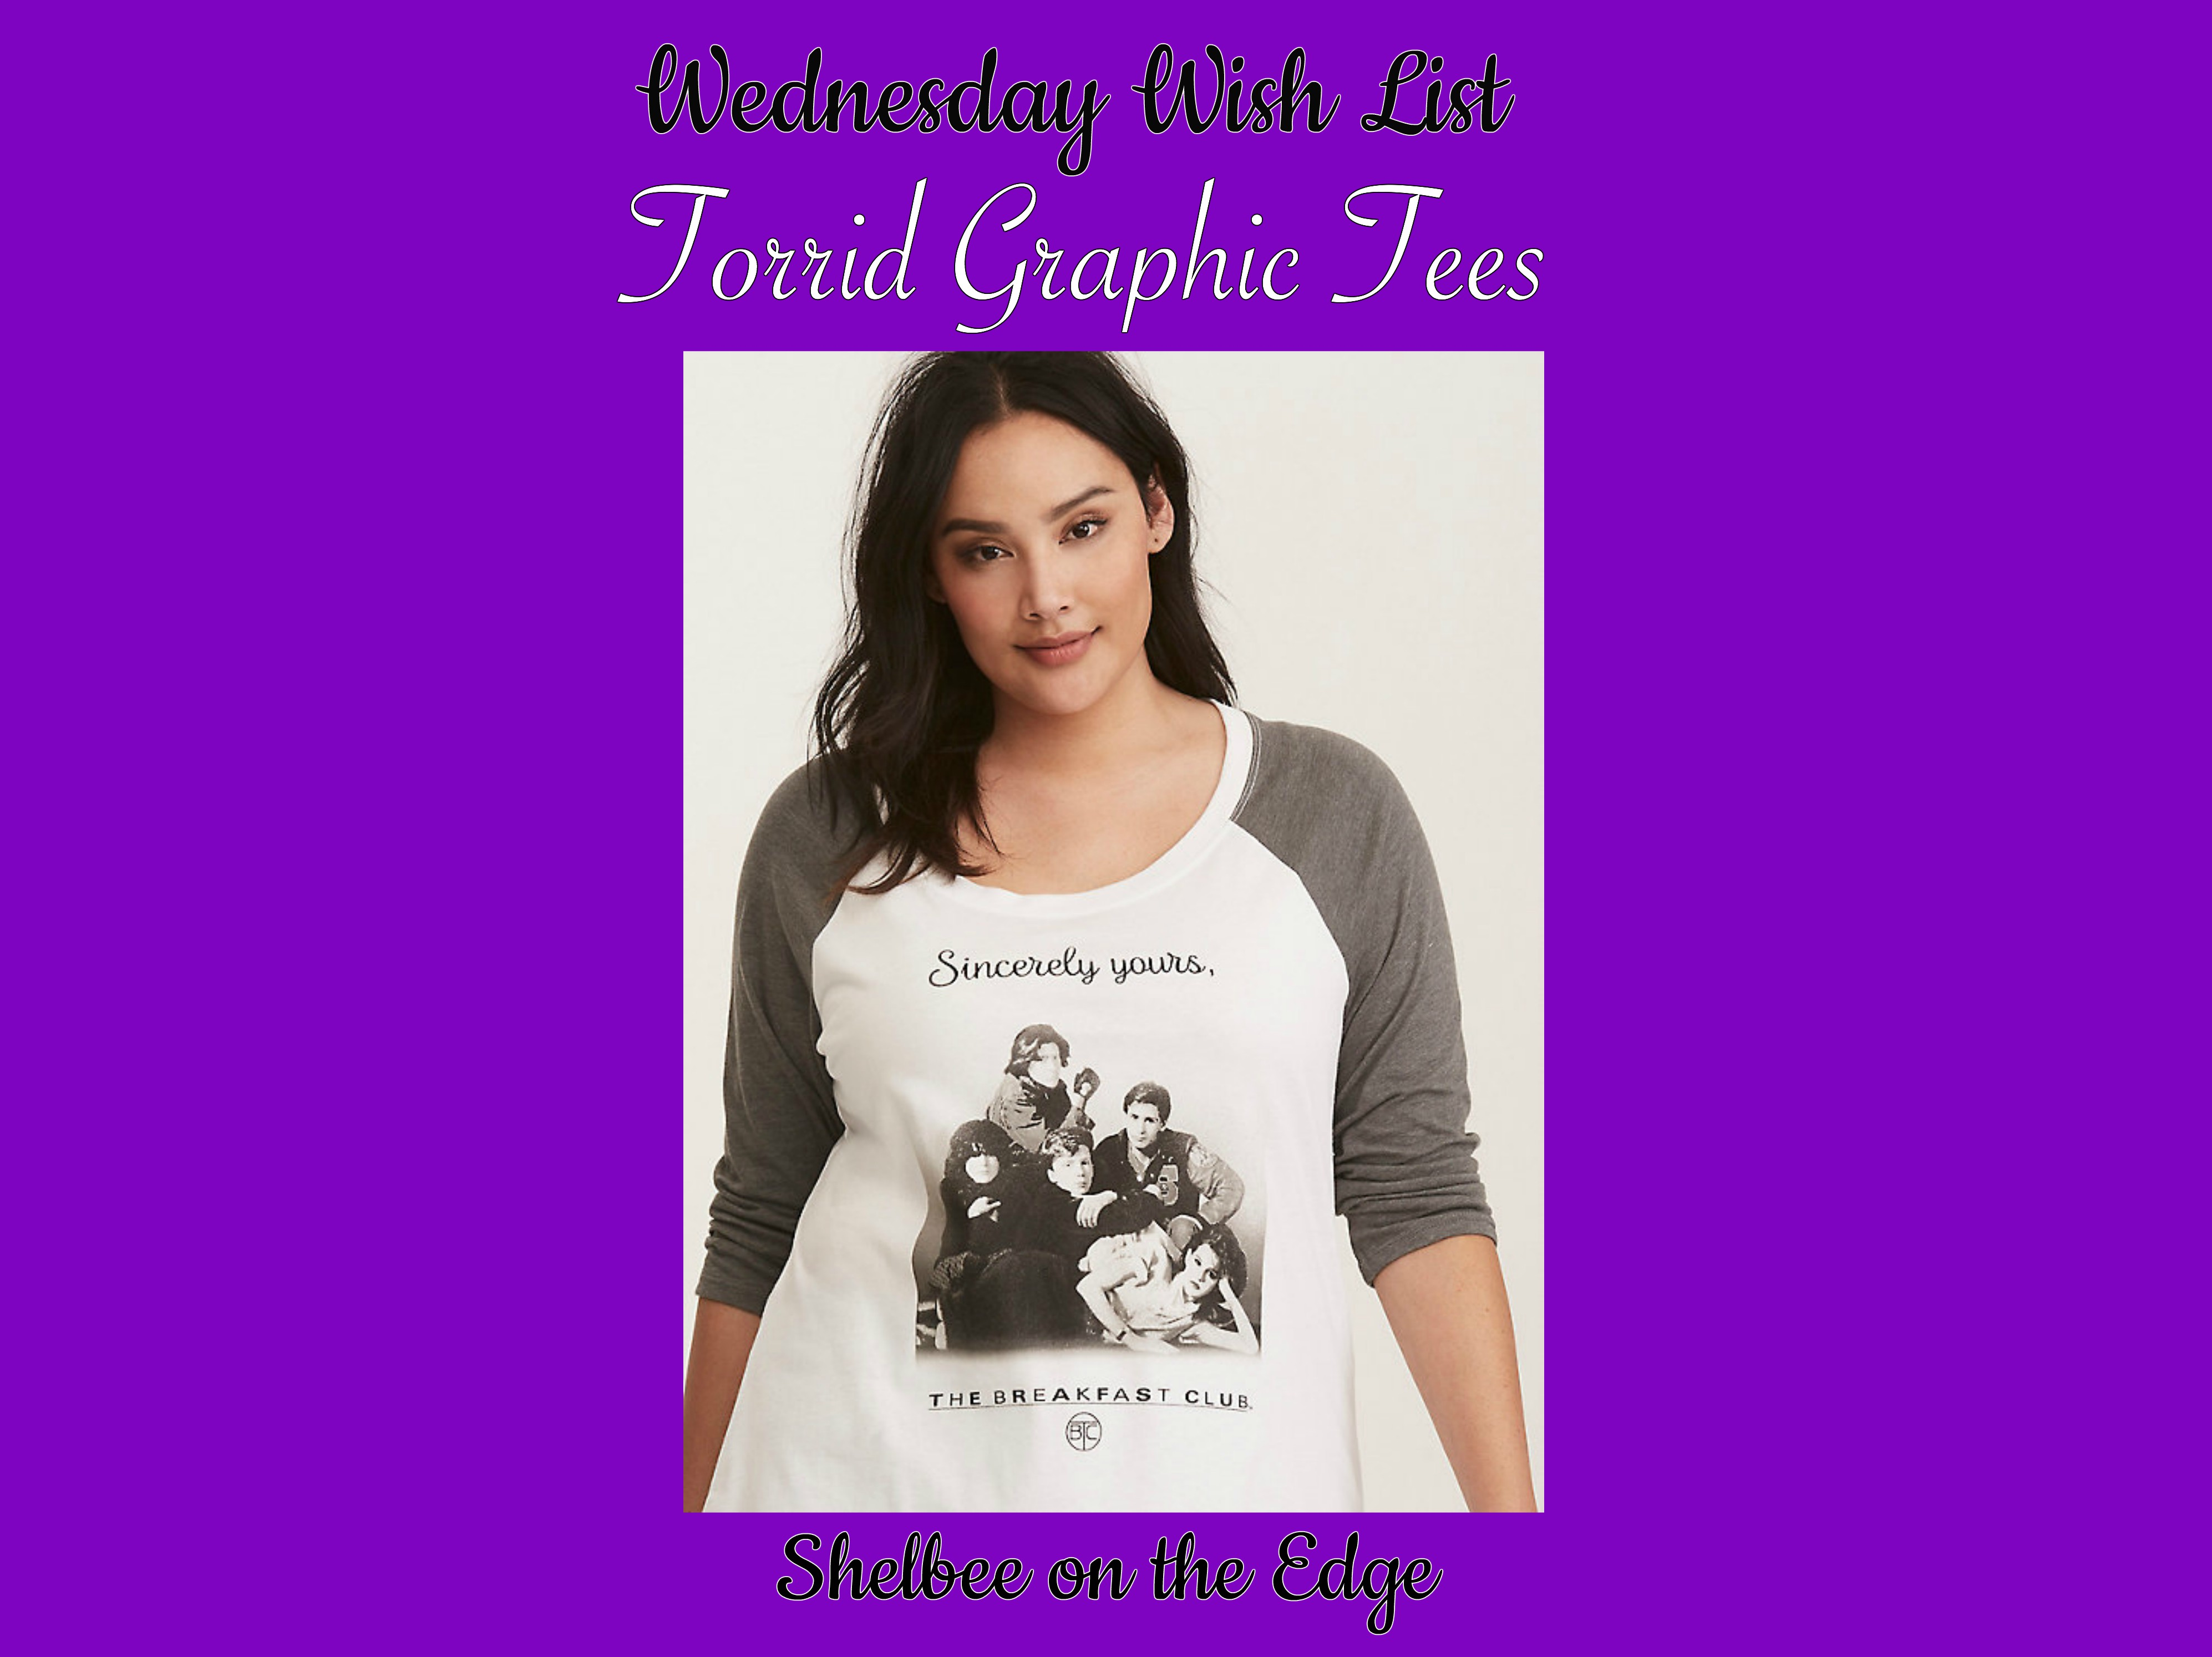 Wednesday Wish List: Torrid Graphic Tees